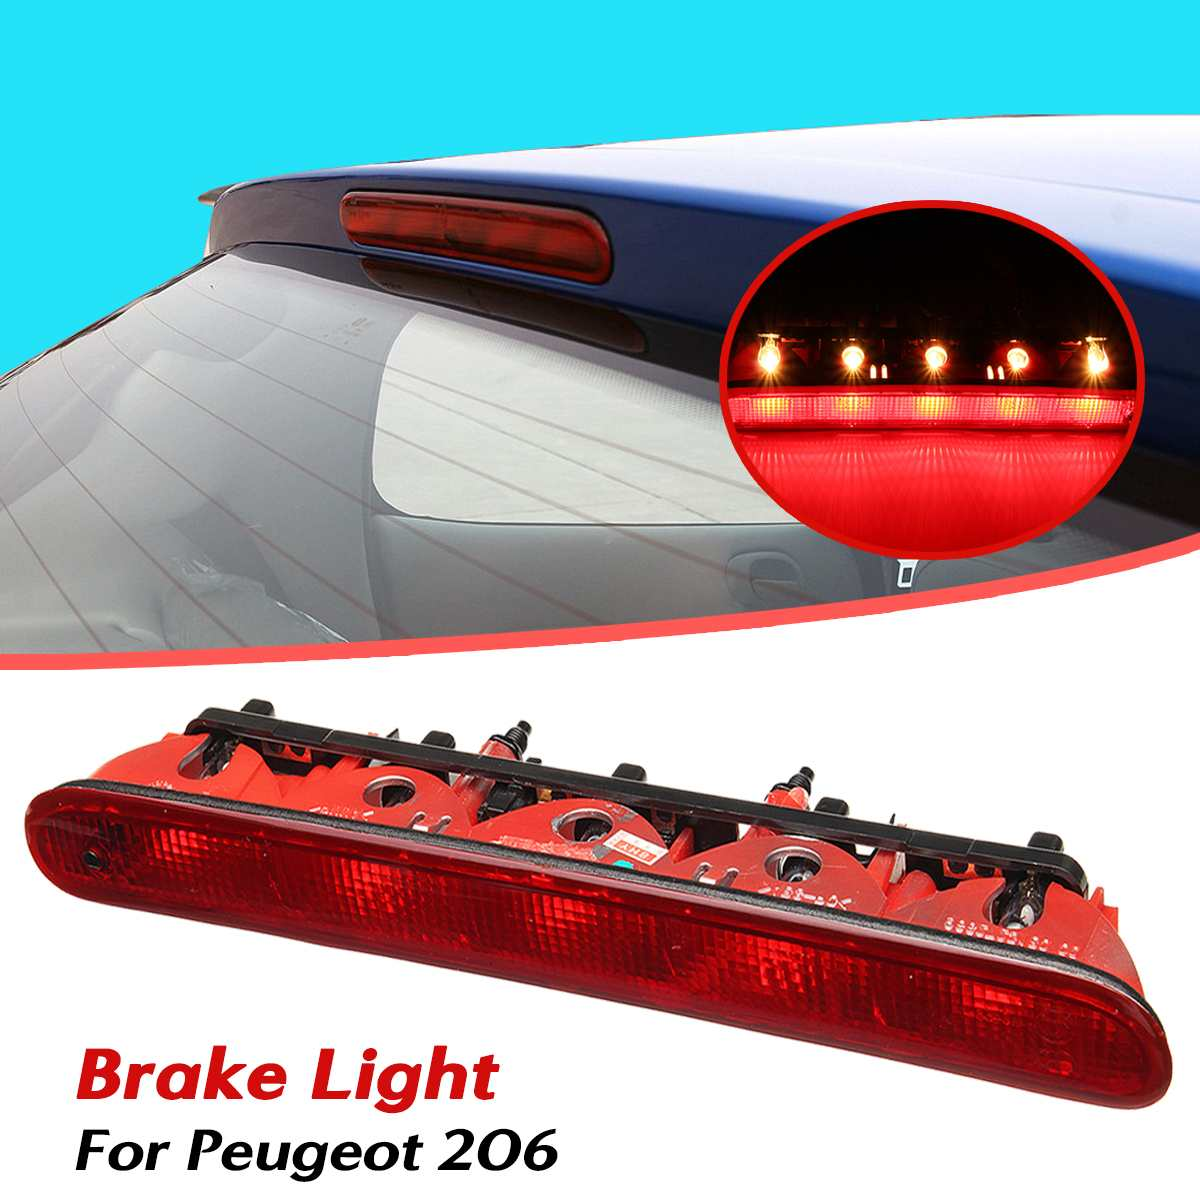 Car Red Rear Stop Light Rear Additional Third Brake Light High Mount Stop Lamps 6350K5 For Peugeot 206